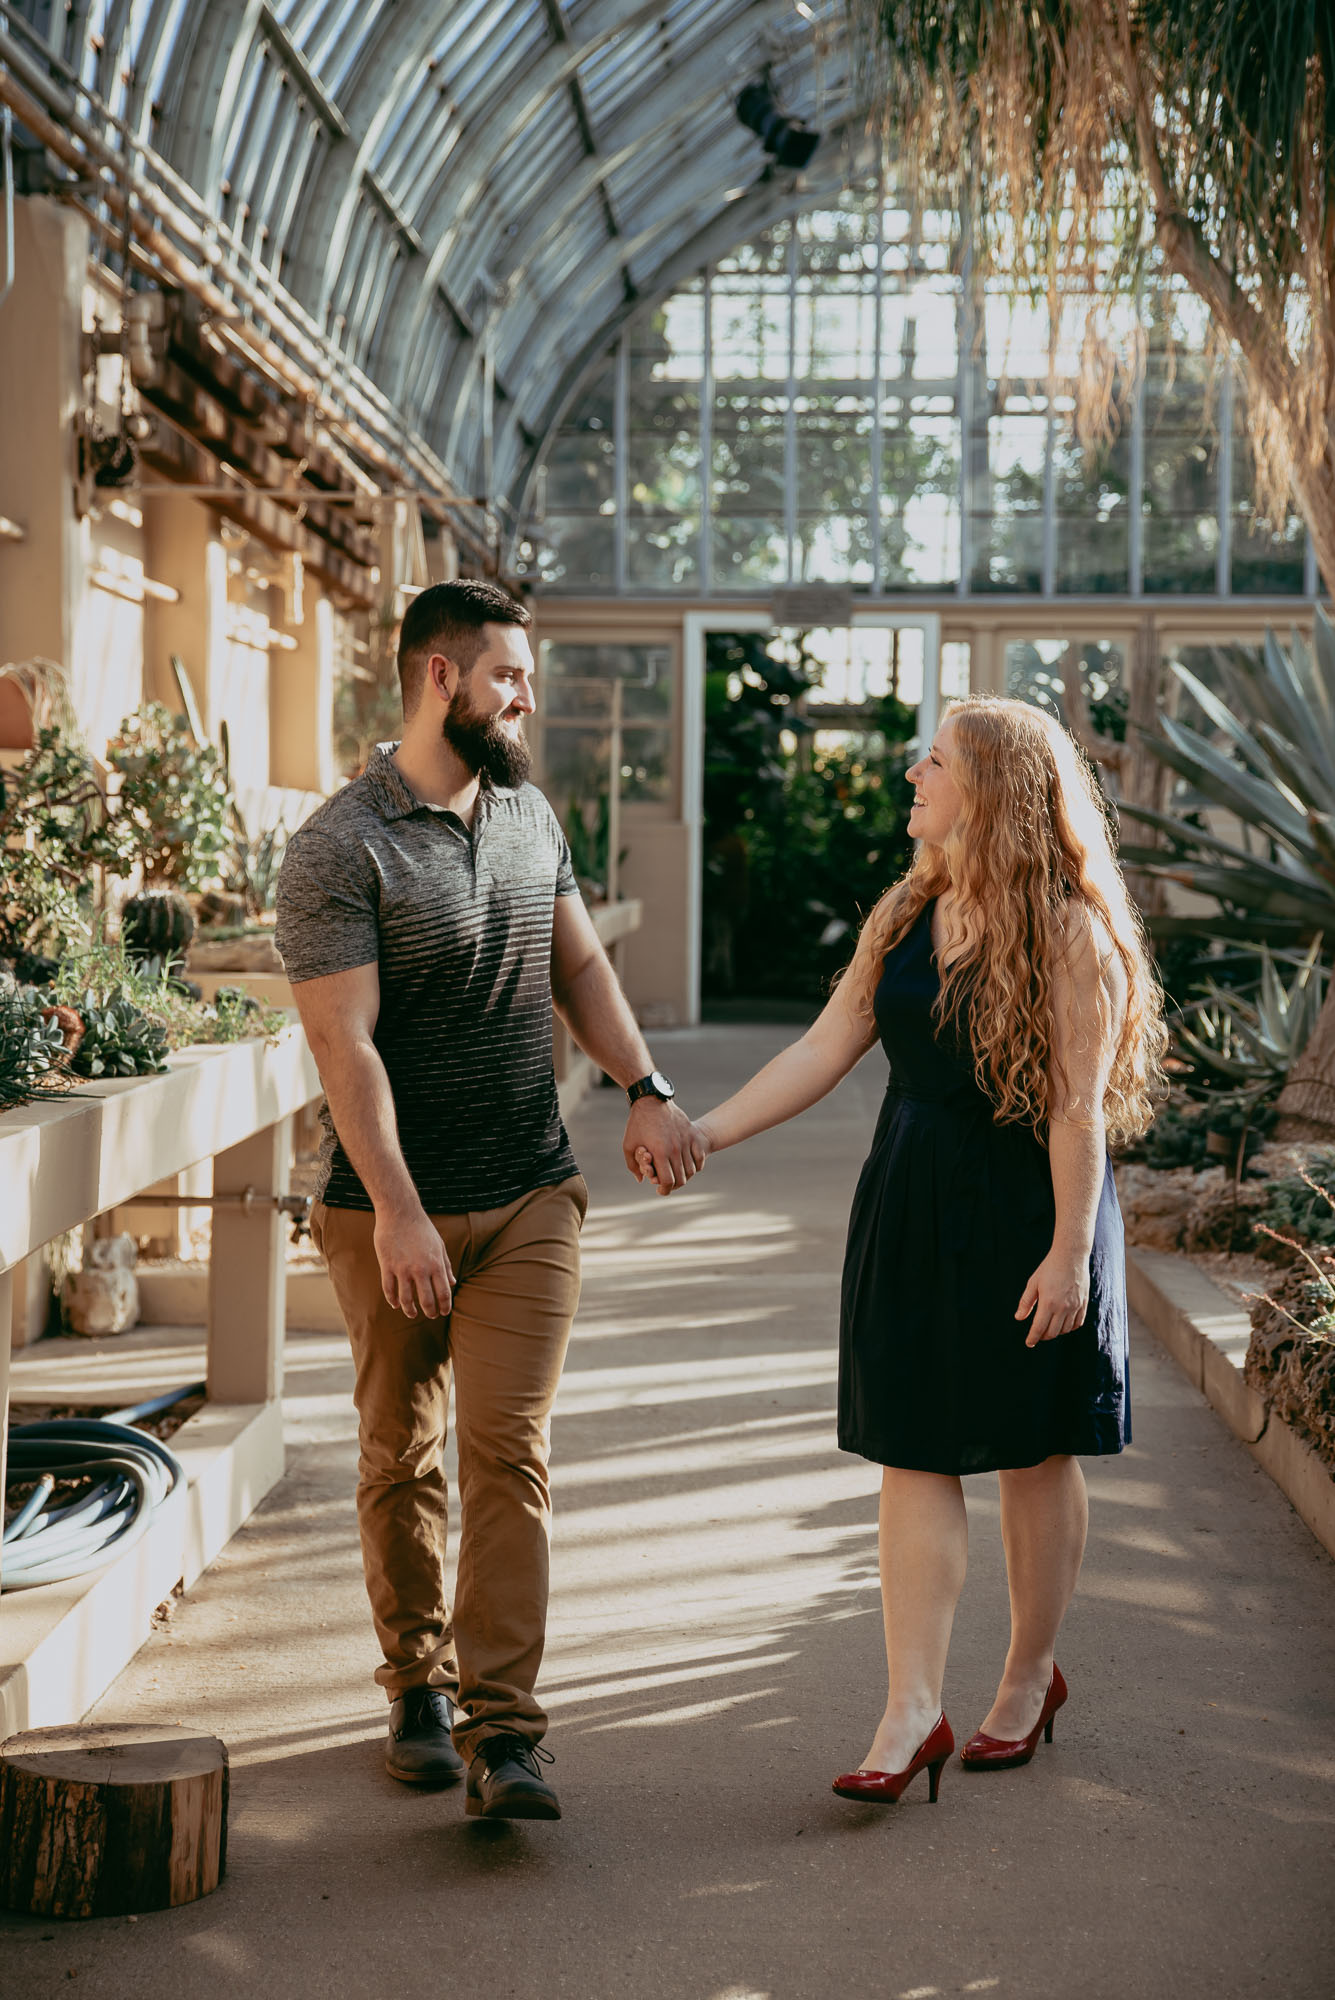 garfield-conservatory-engagement-photos-chicago-il-photographers-30.jpg